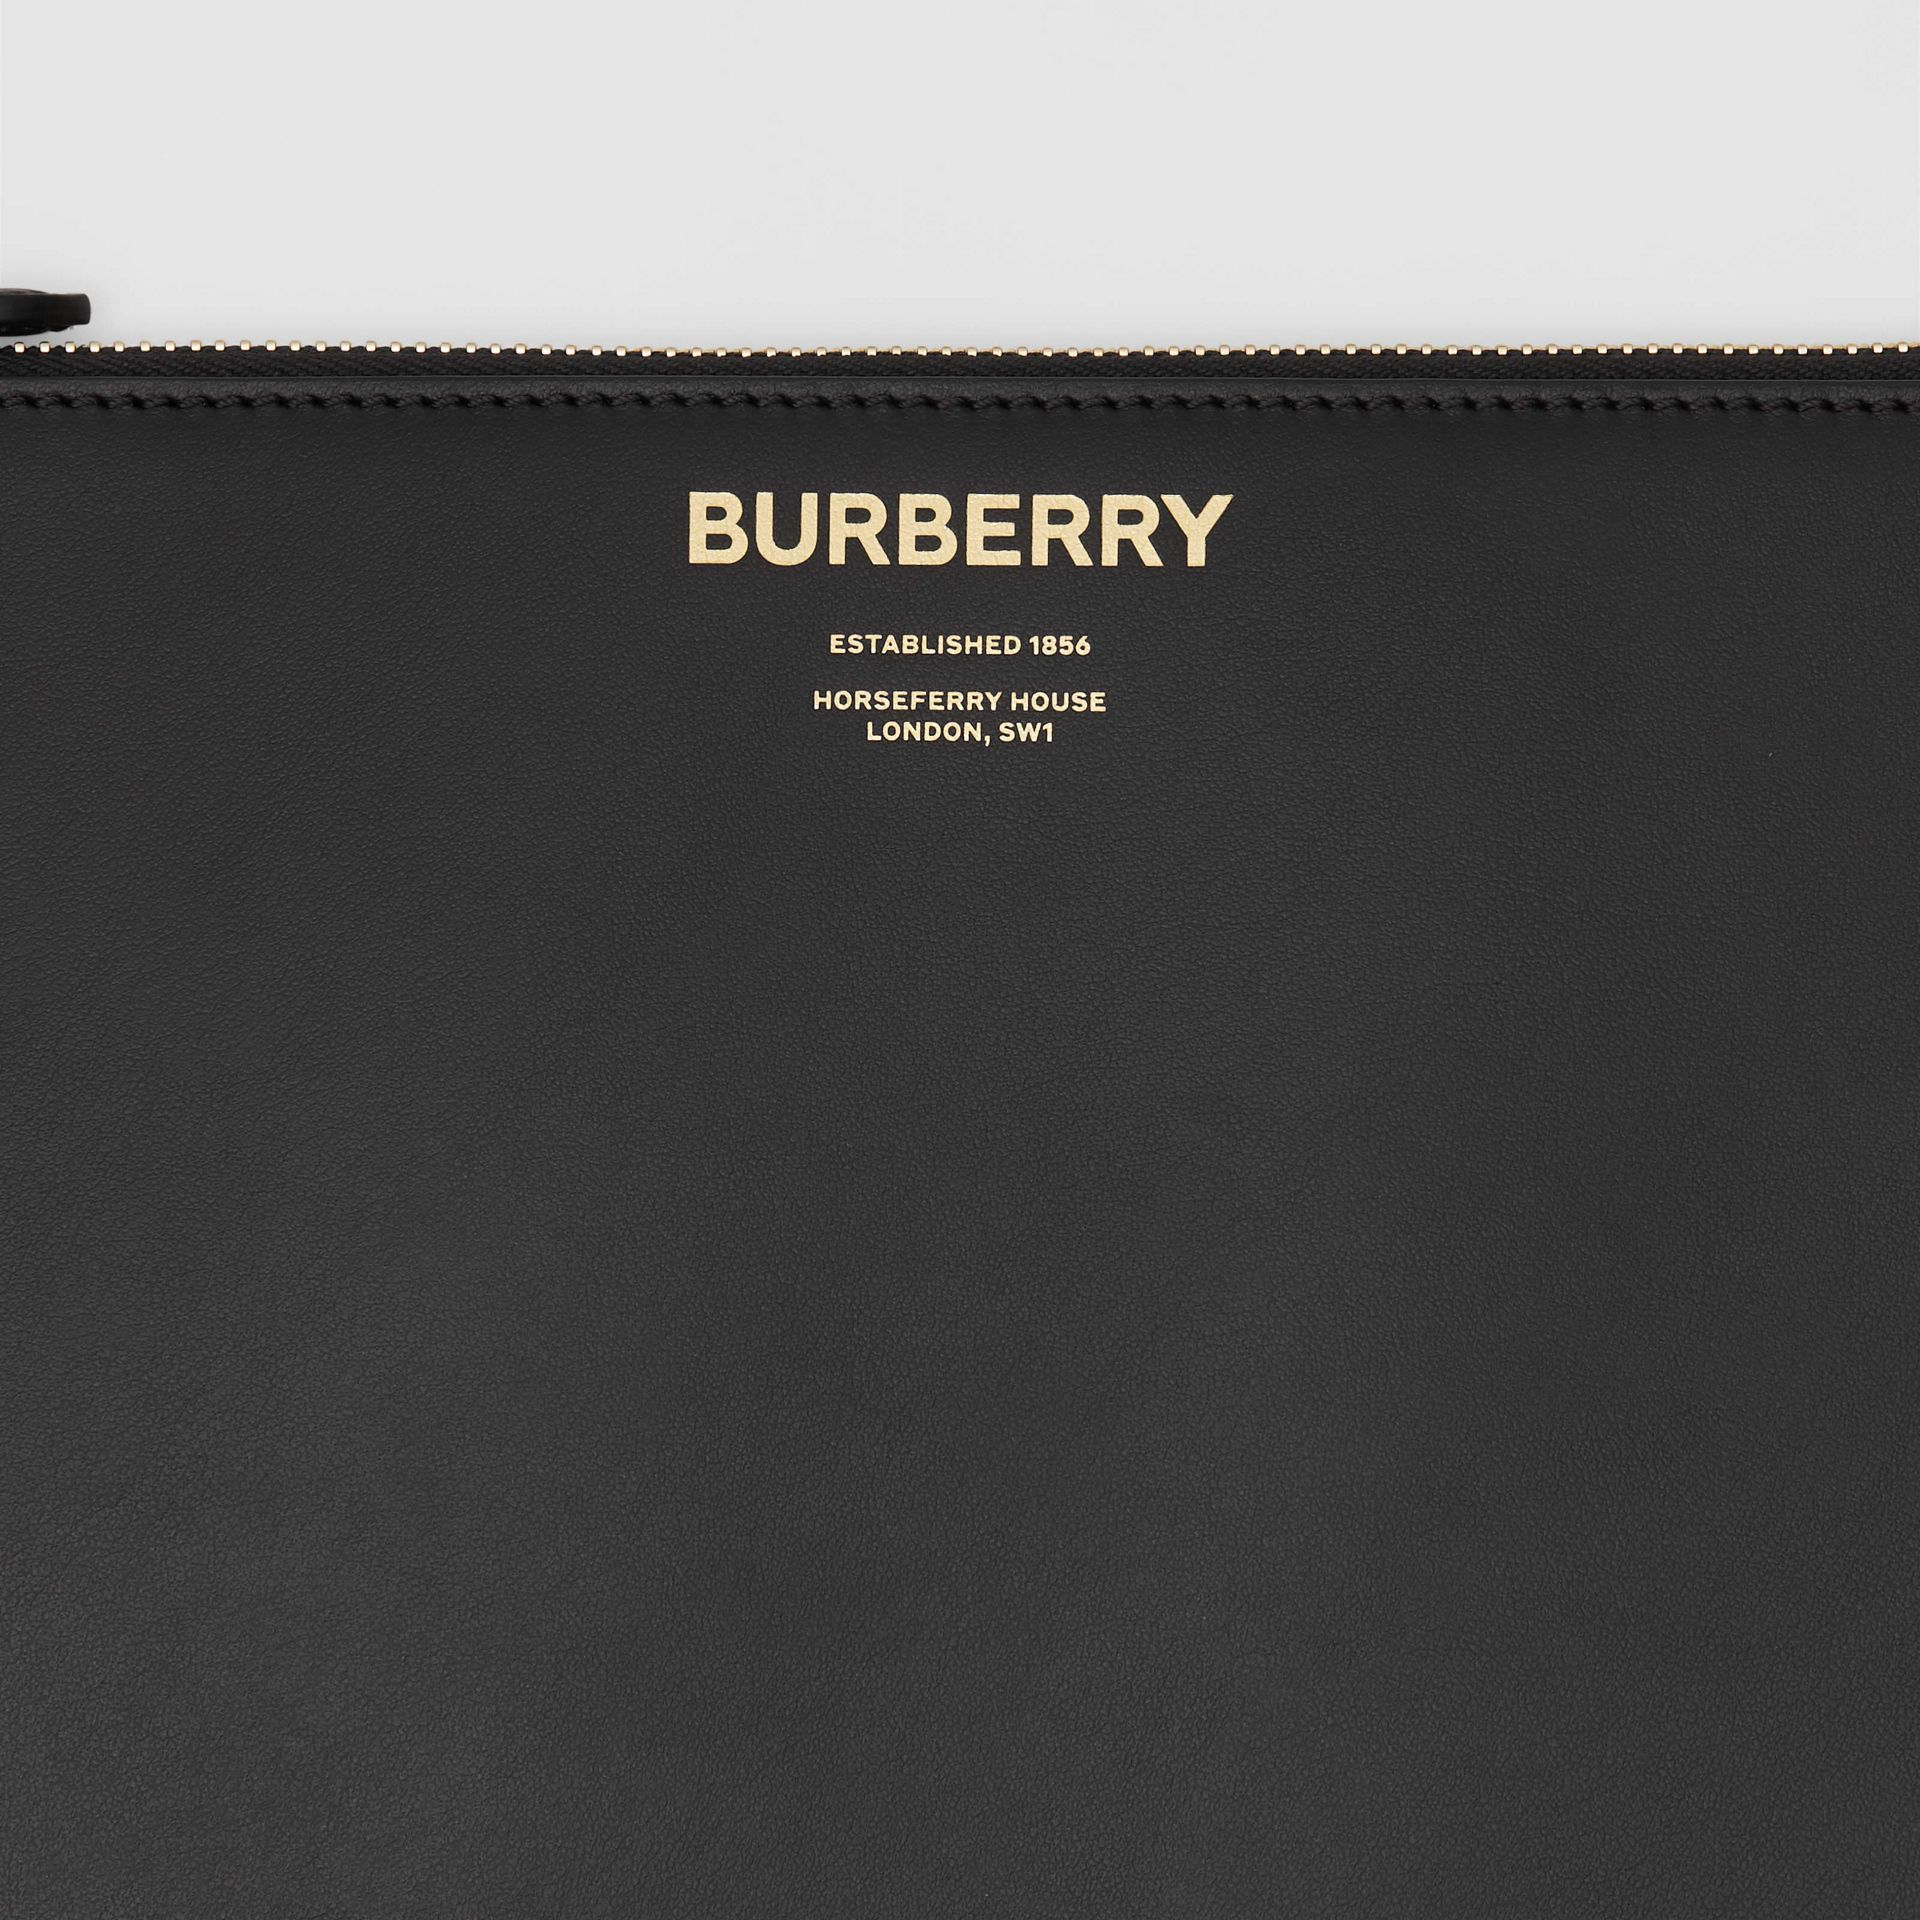 Horseferry Print Leather Zip Pouch in Black - Men | Burberry - gallery image 1